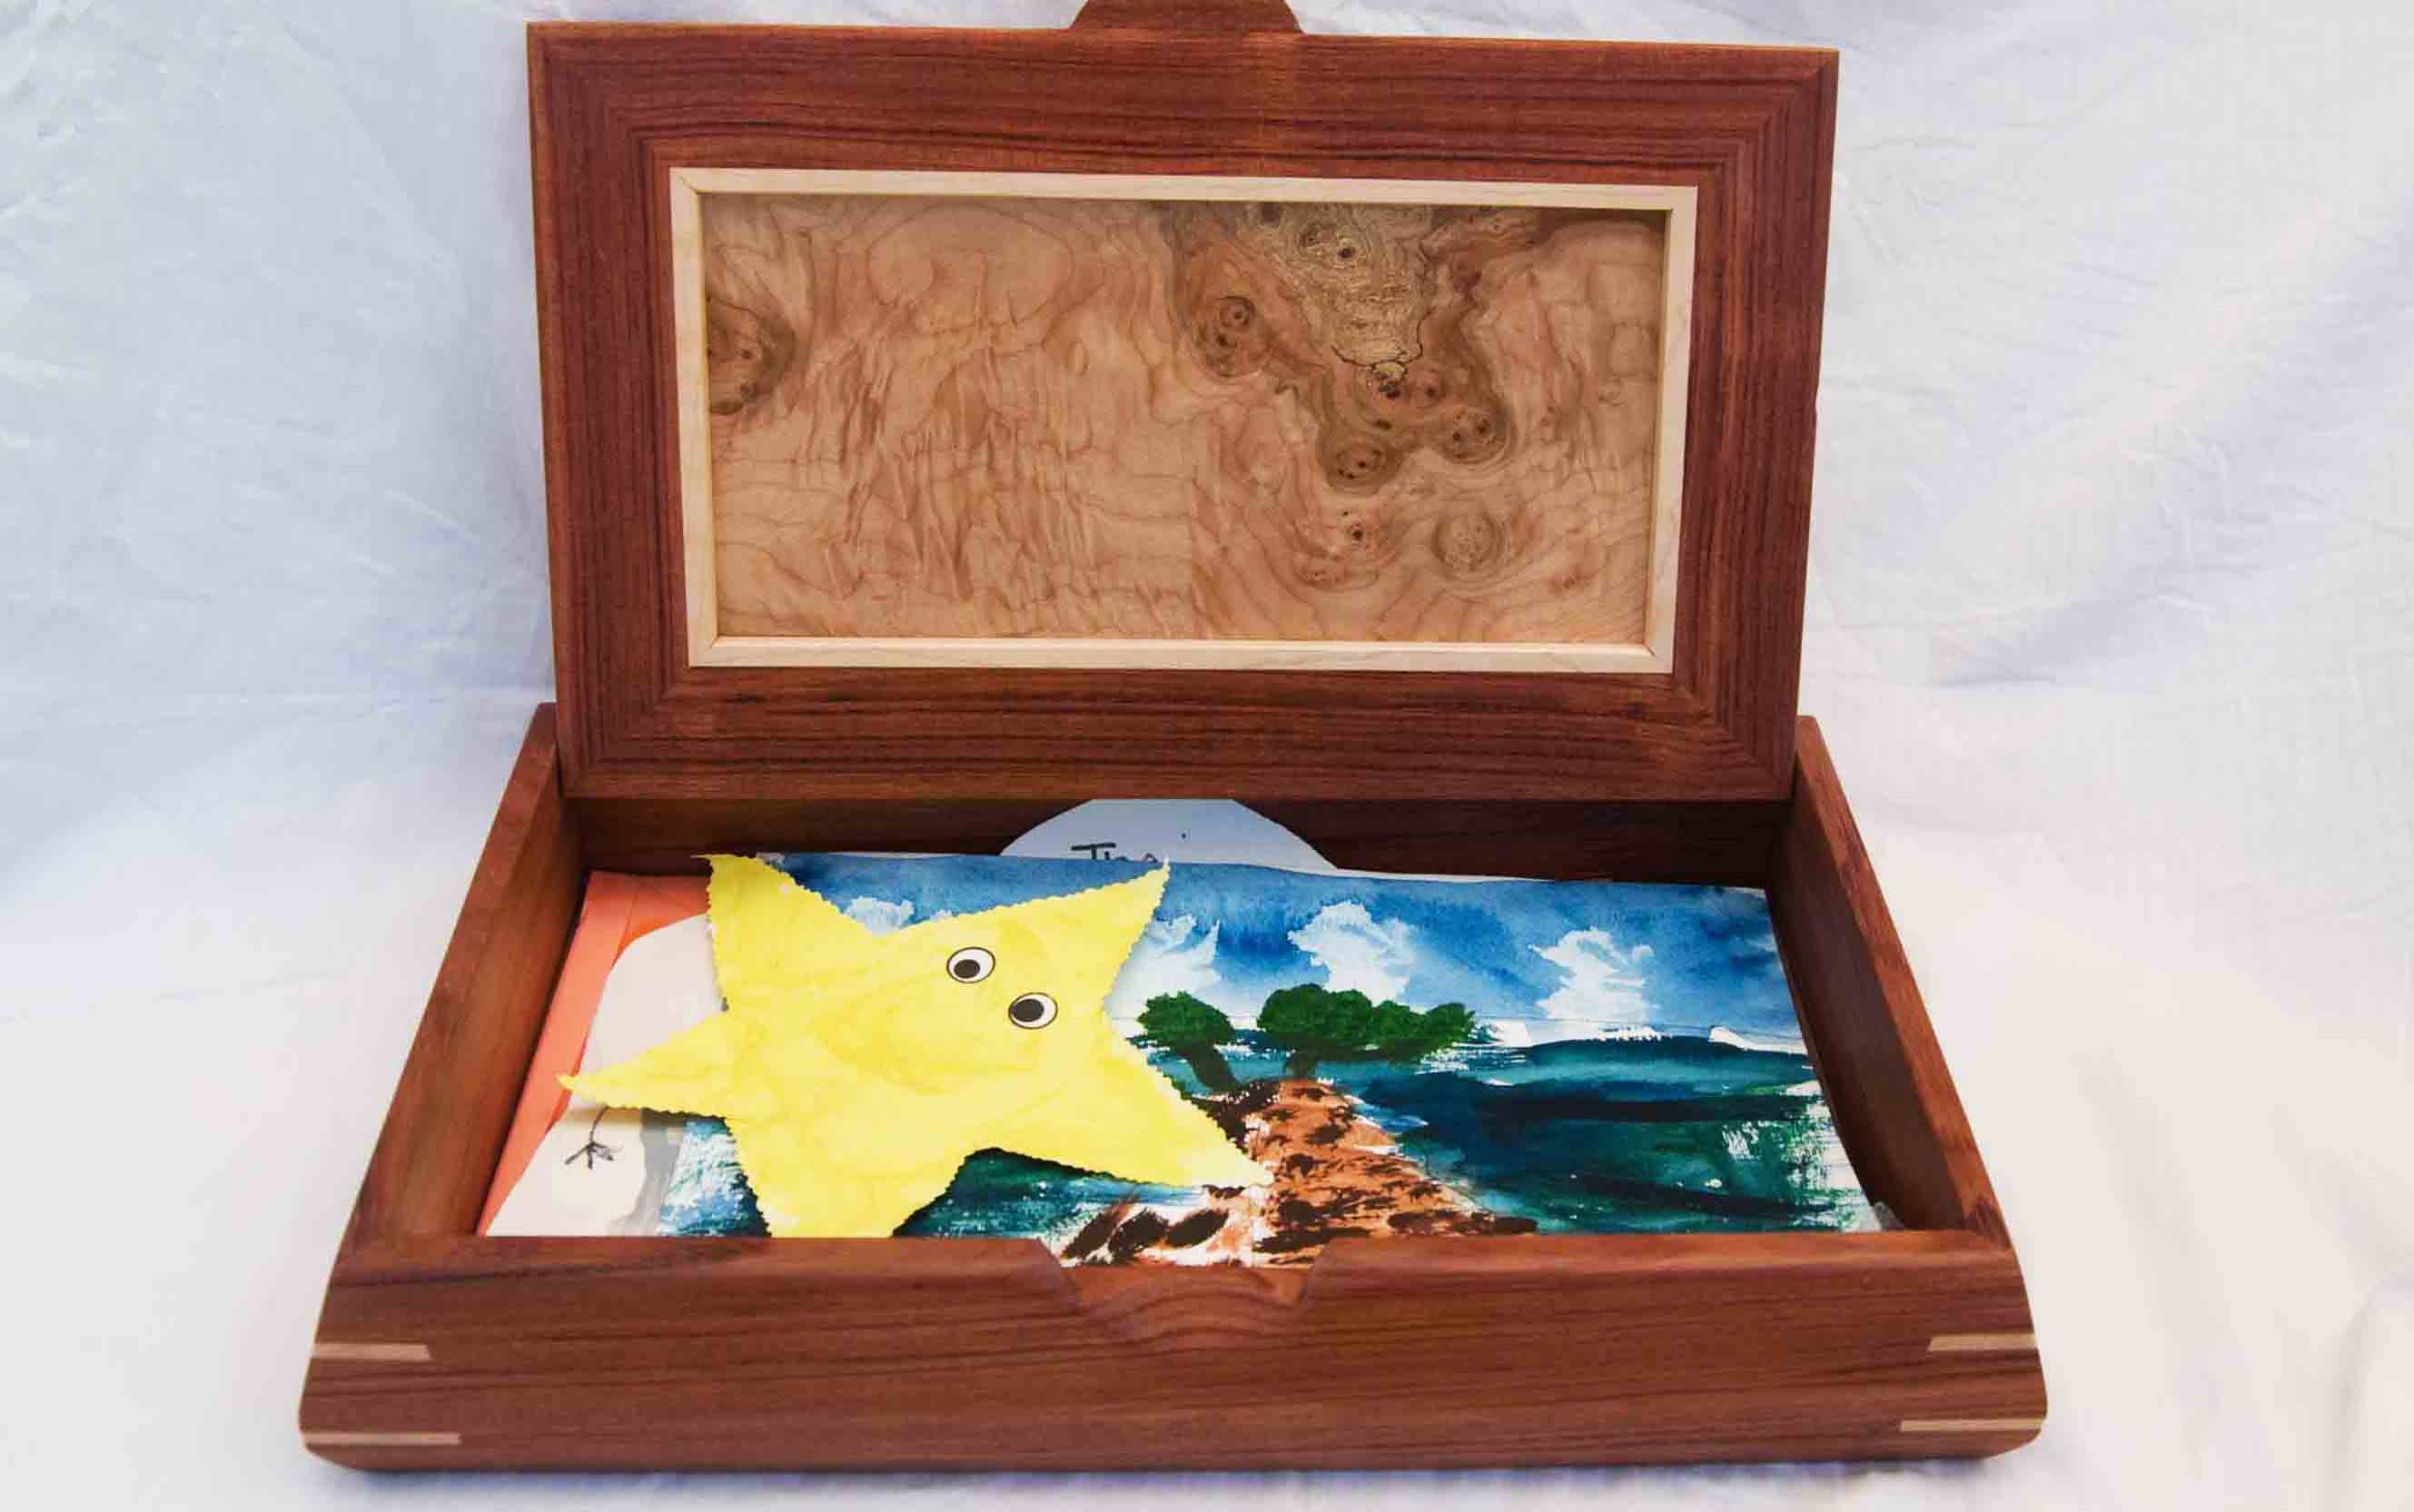 Handmade wooden box that holds children's art